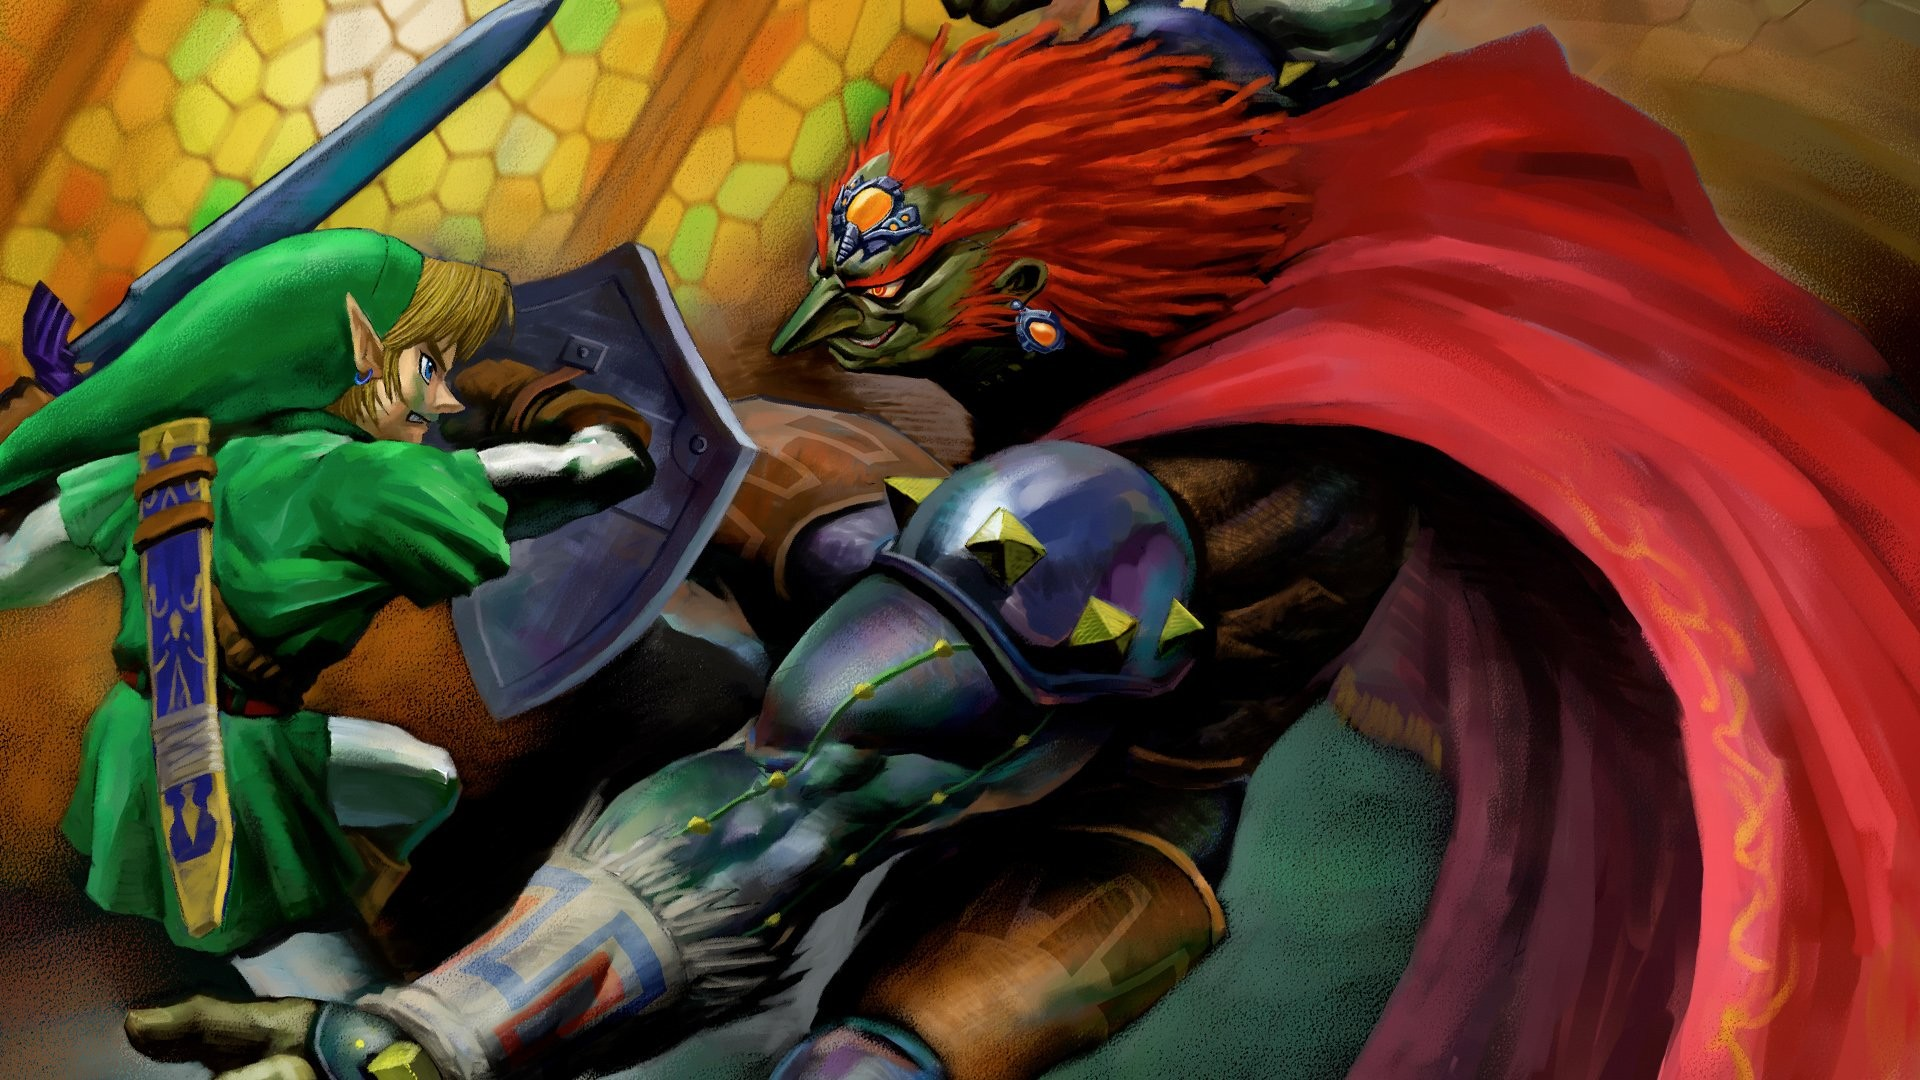 Res: 1920x1080, The Legend Of Zelda: Ocarina Of Time HD Wallpapers